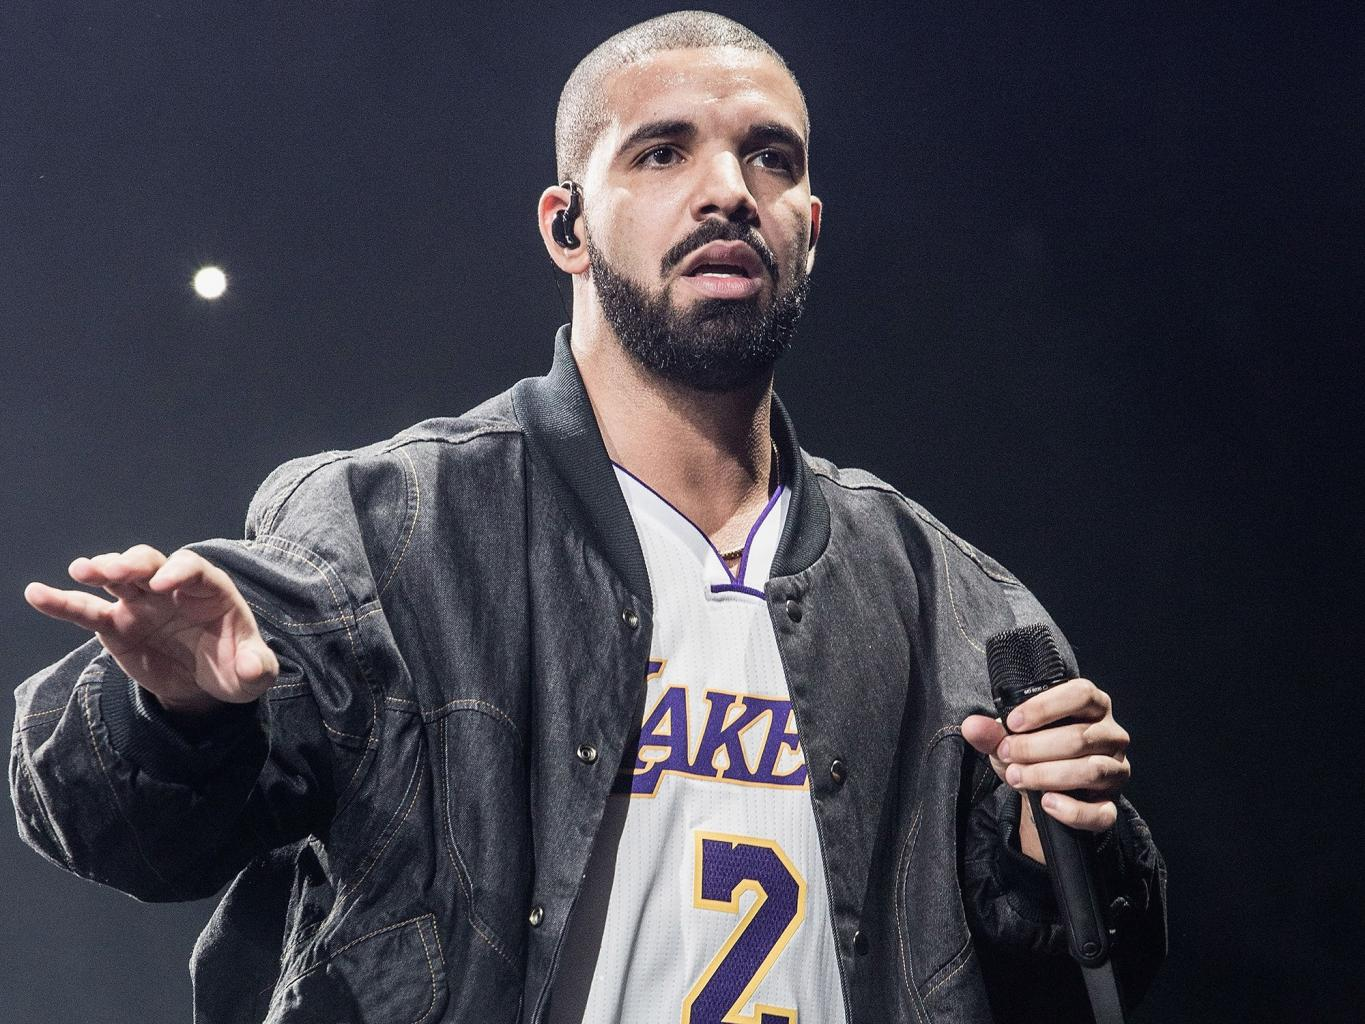 Drake Responds to Rumors He Asked a Fan to Remove Her Hijab: 'I Am Being Utilized in a Fake Media Story'